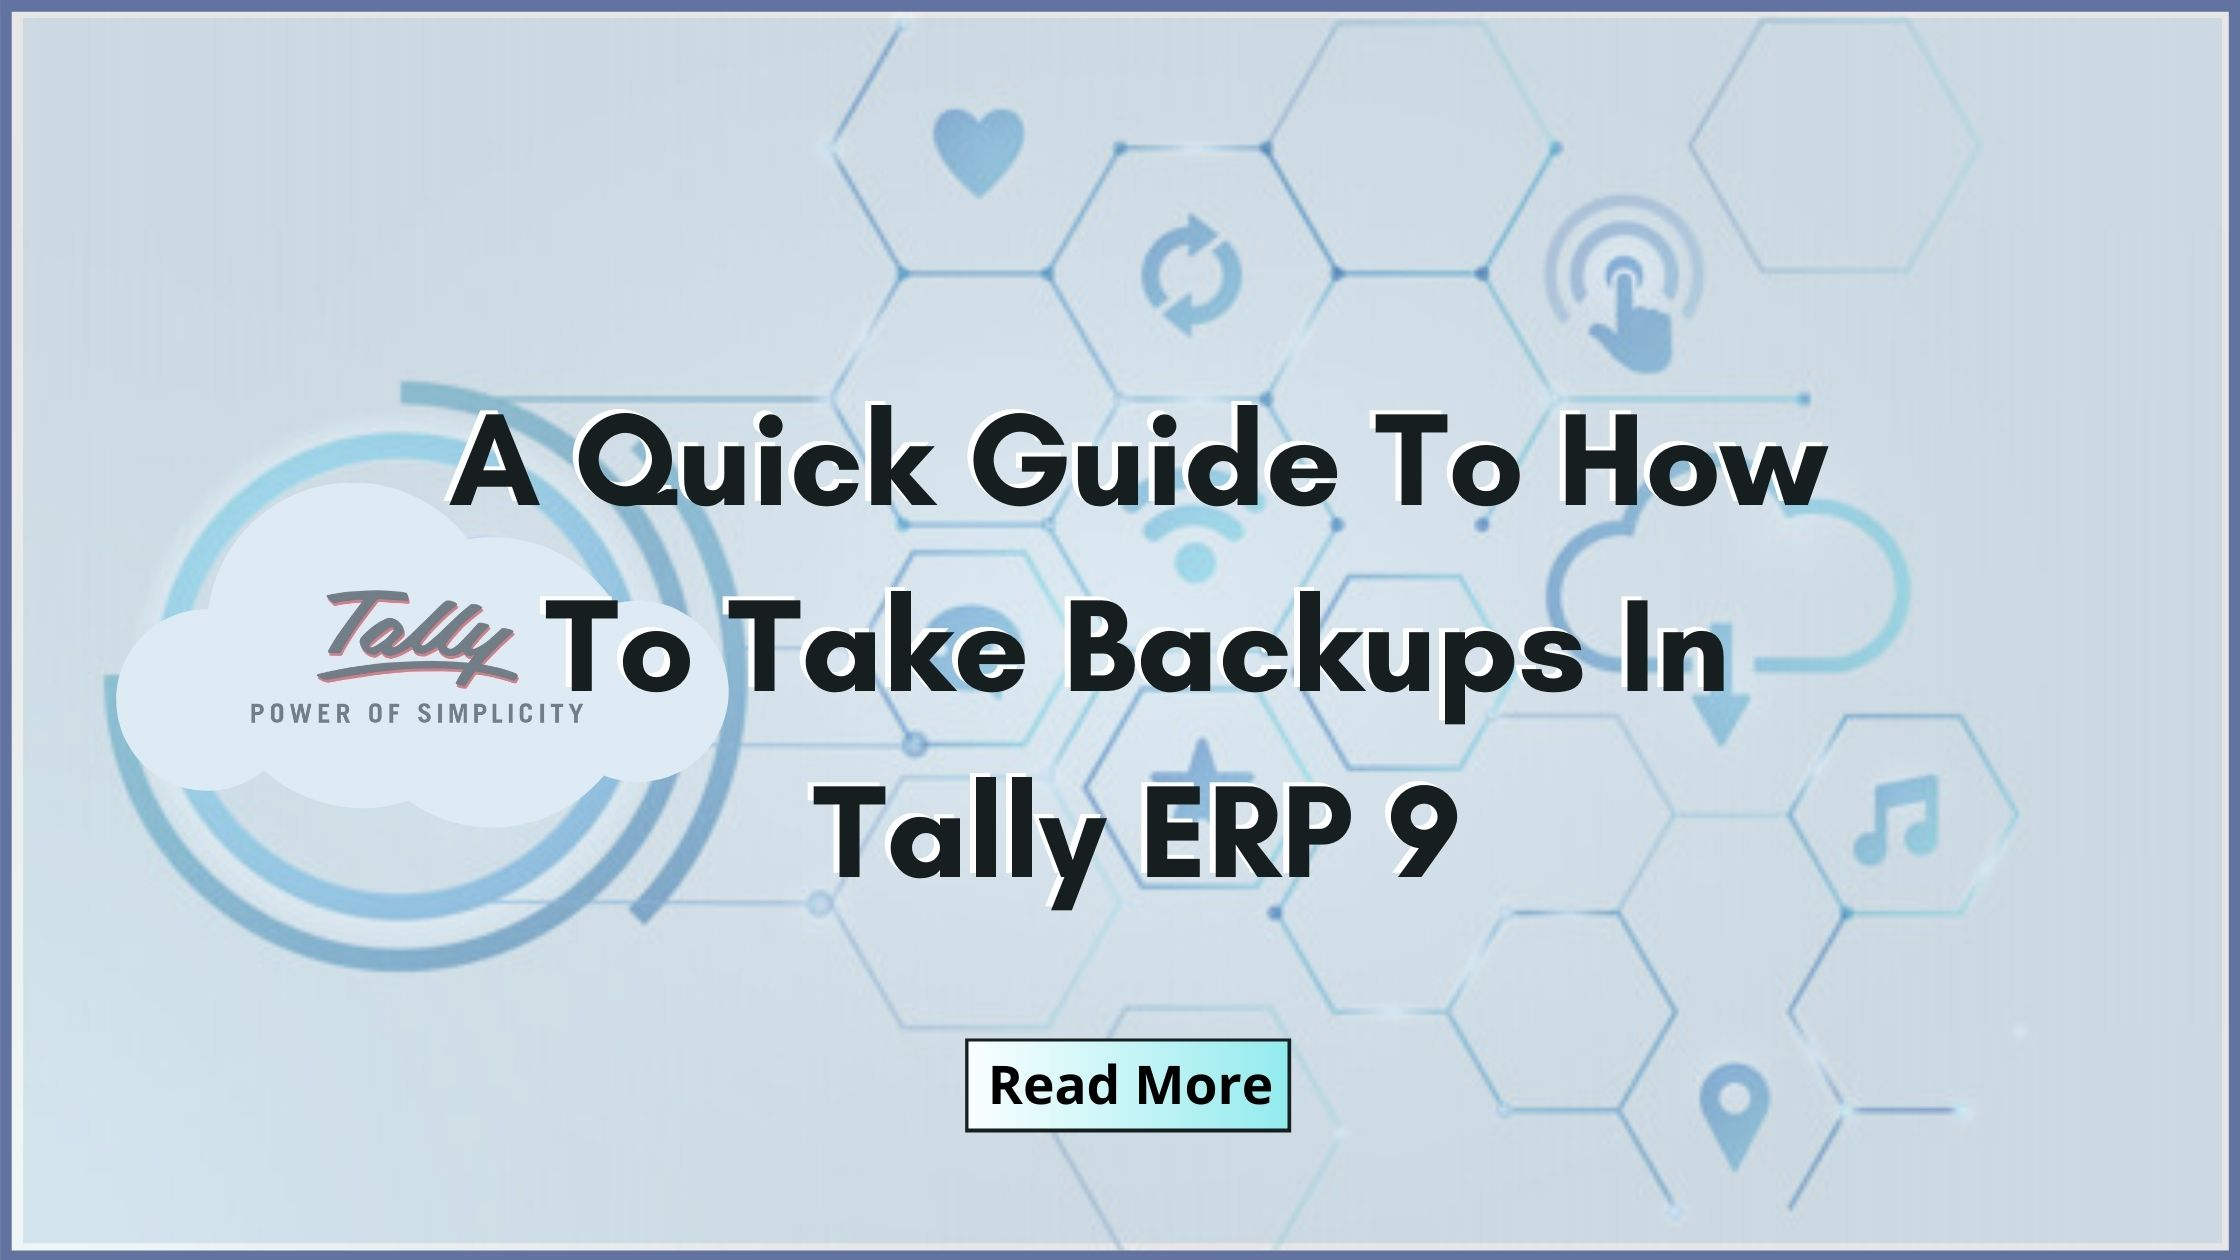 Tally erp cloud backup